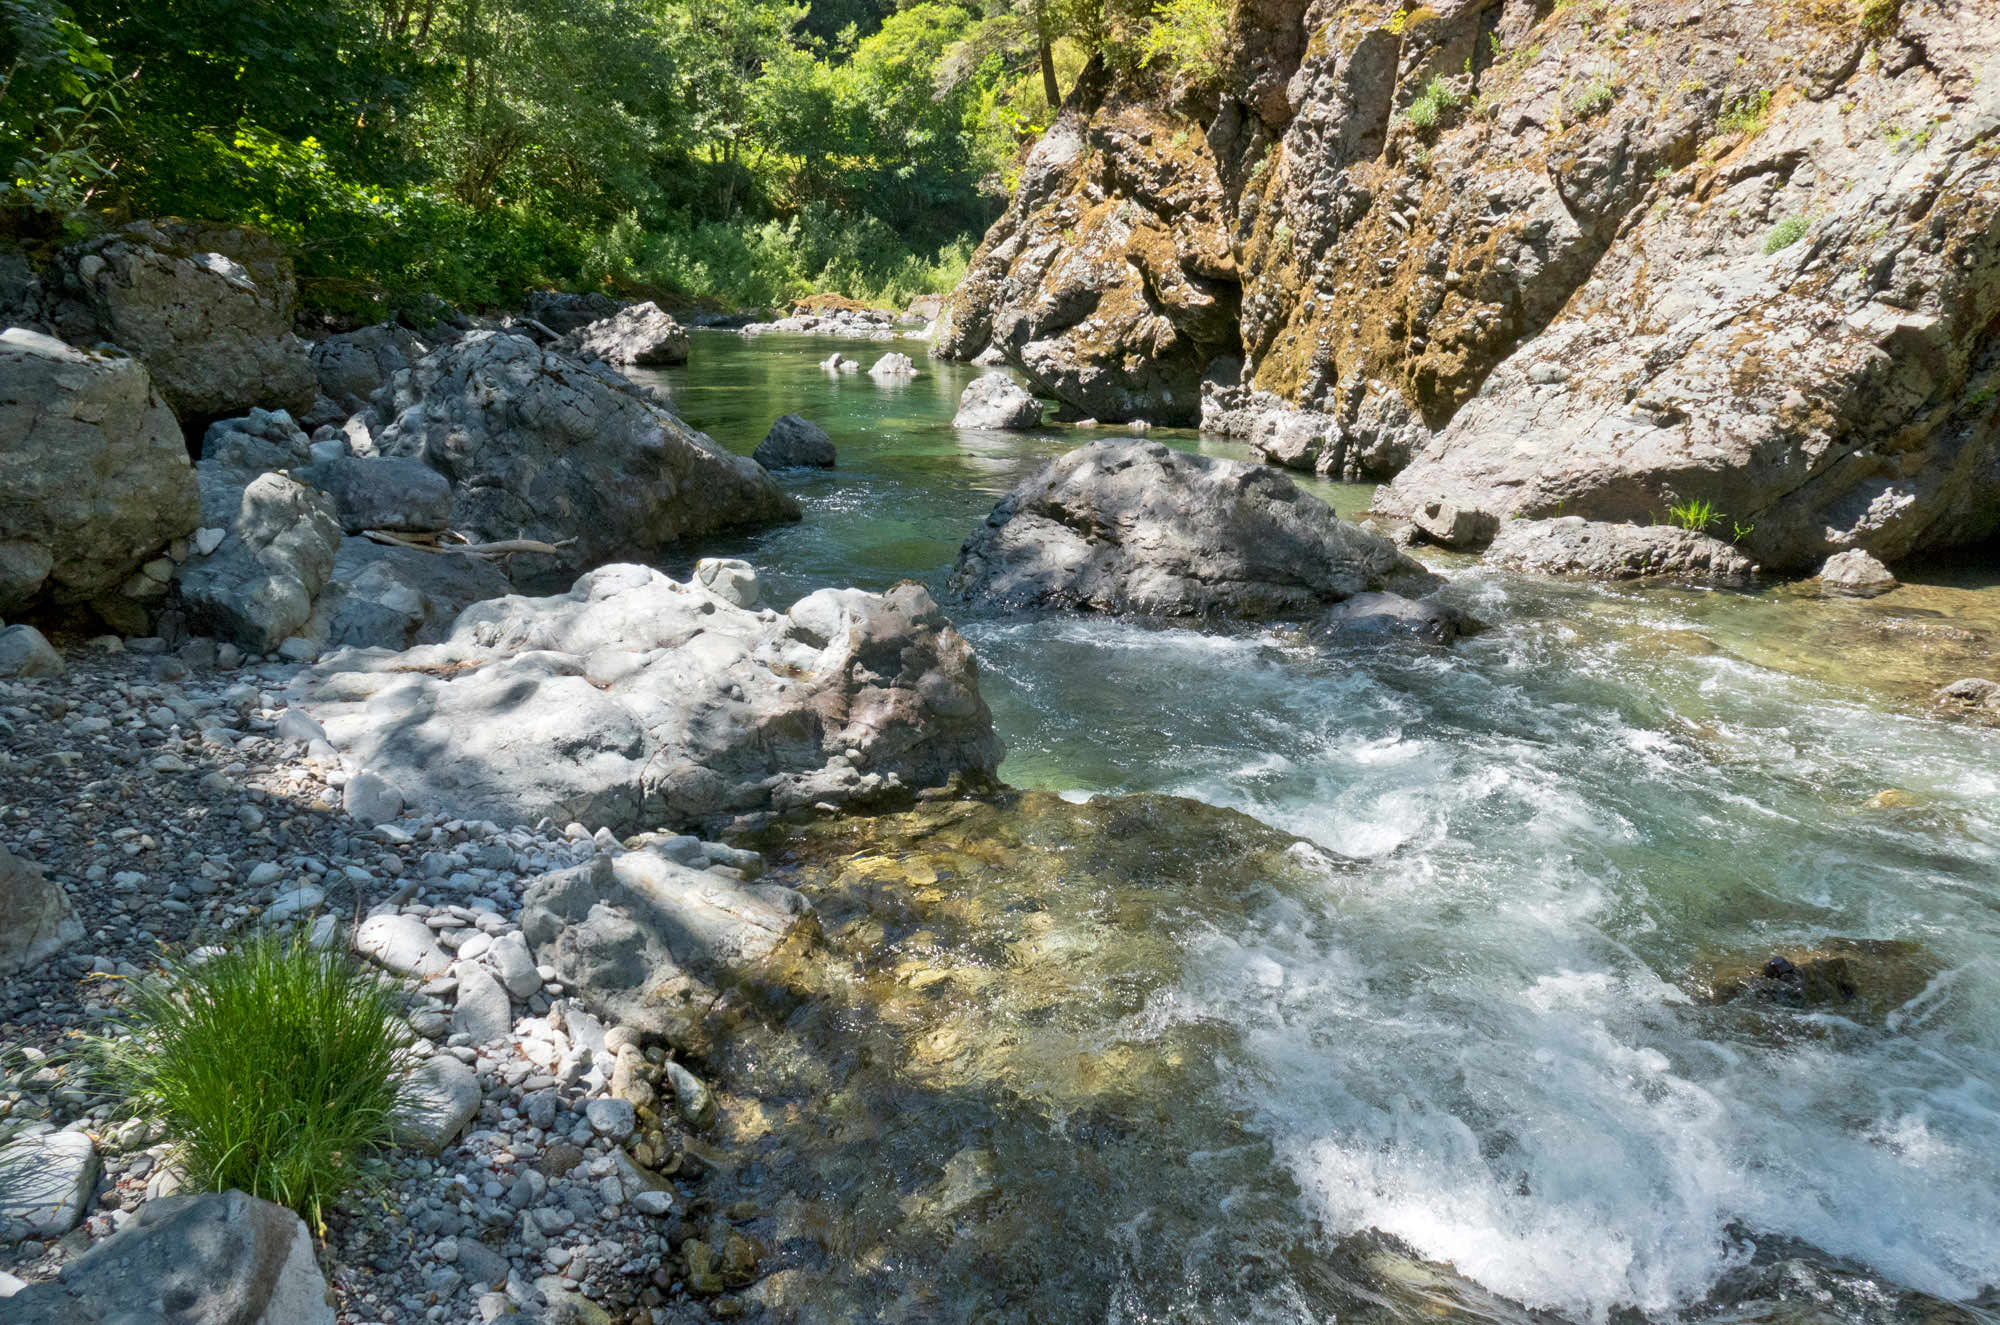 The blue-green waters of the Wild and Scenic Elk River rush by the rocky shoreline.